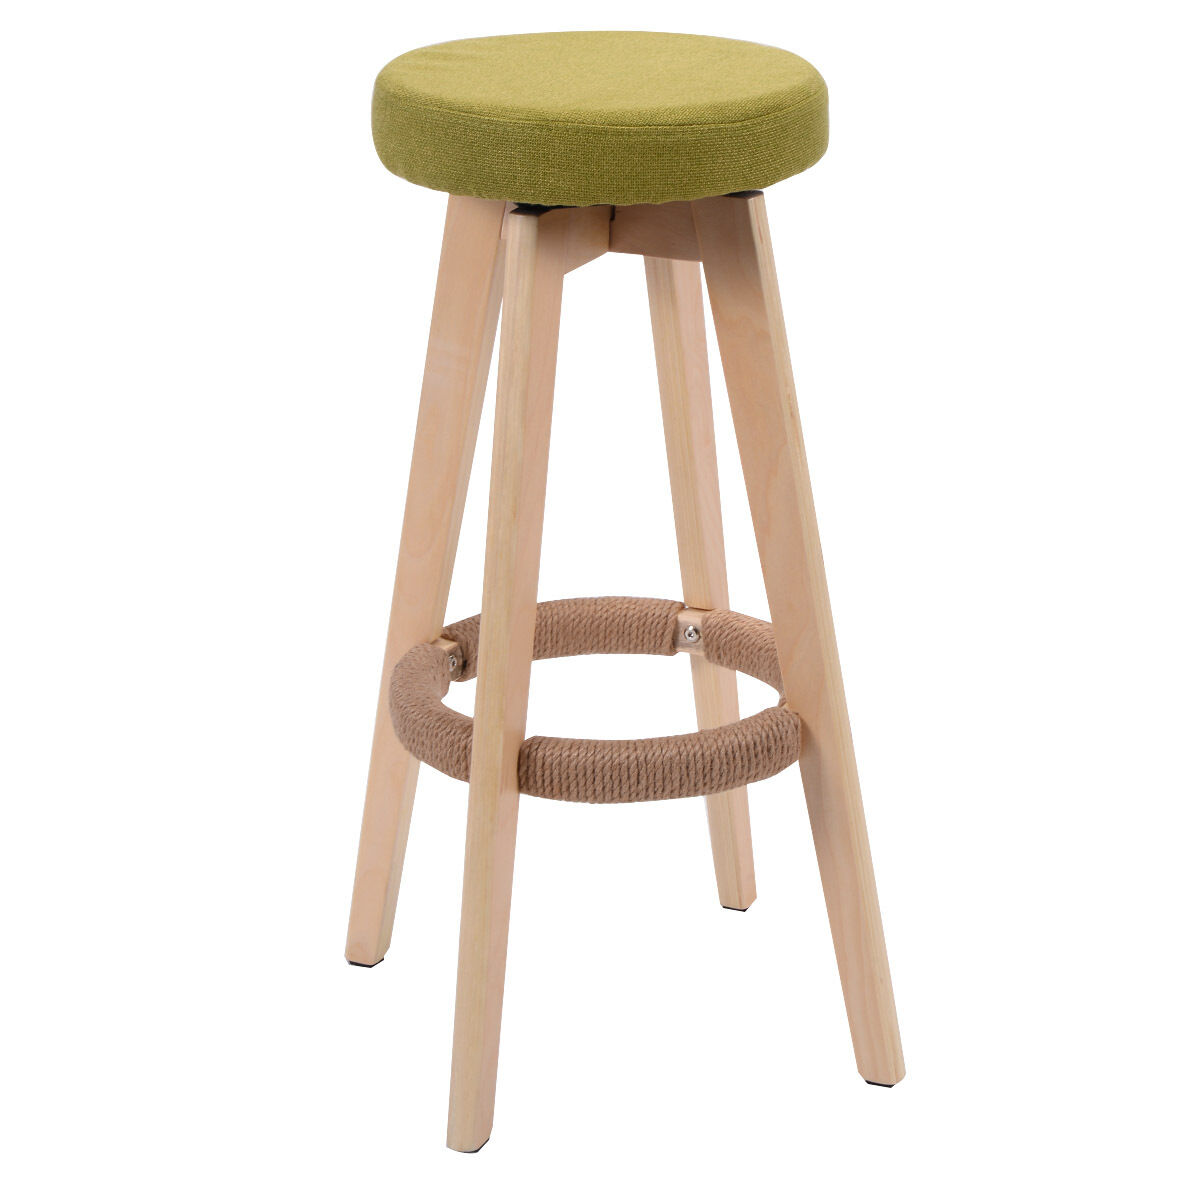 Bar Stool Chair Round Wooden Chair Linen Bar Stool Dining Counter